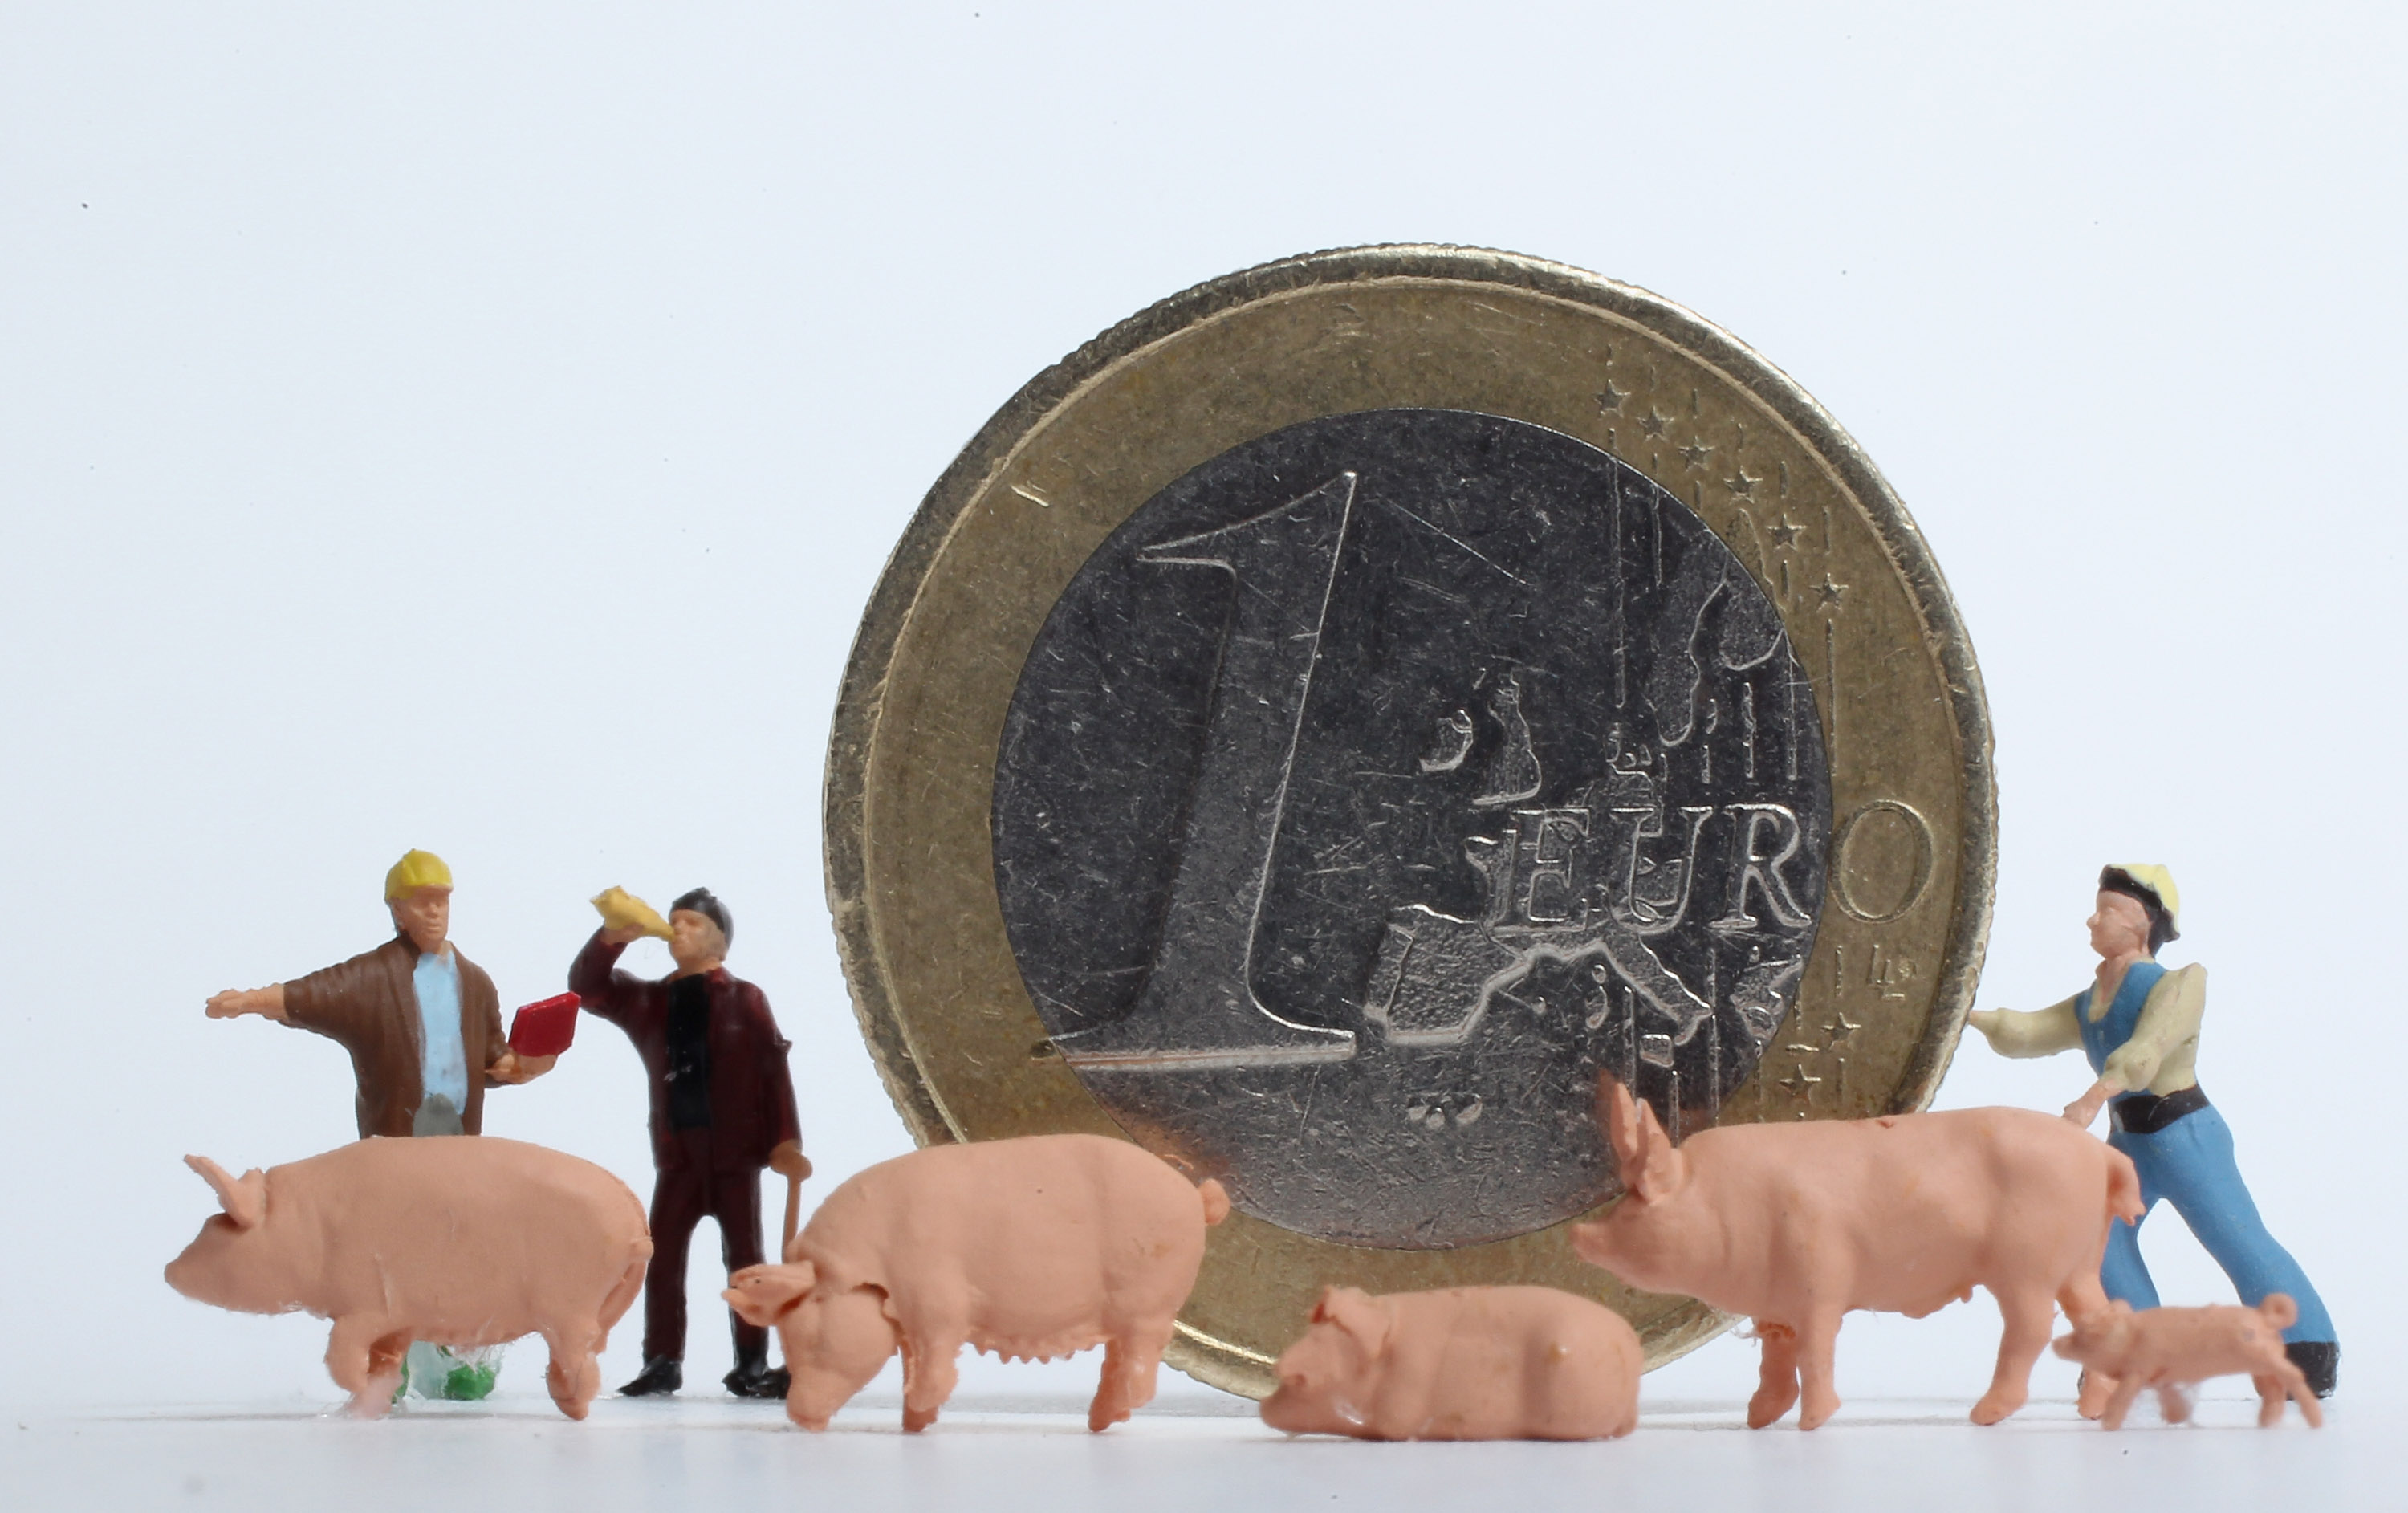 BERLIN, GERMANY - DECEMBER 15: In this photo illustration plastic, toy construction workers and pigs stand around a one Euro coin on December 15, 2010 in Berlin, Germany. European leaders are scheduled to meet at a European Union summit in Brussels tomorrow to discuss measures on how to stabilize the Euro that could include the creation of a permanent eurozone bailout system. The Euro has come under severe strain in the last year through the economic problems of some of its members, and a group of nations nicknamed the PIIGS (Portugal, Ireland, Italy, Greece and Spain) have been named by many analysts as the countries posing the biggest threat to the common currency's stability. (Photo Illustration by Sean Gallup/Getty Images)